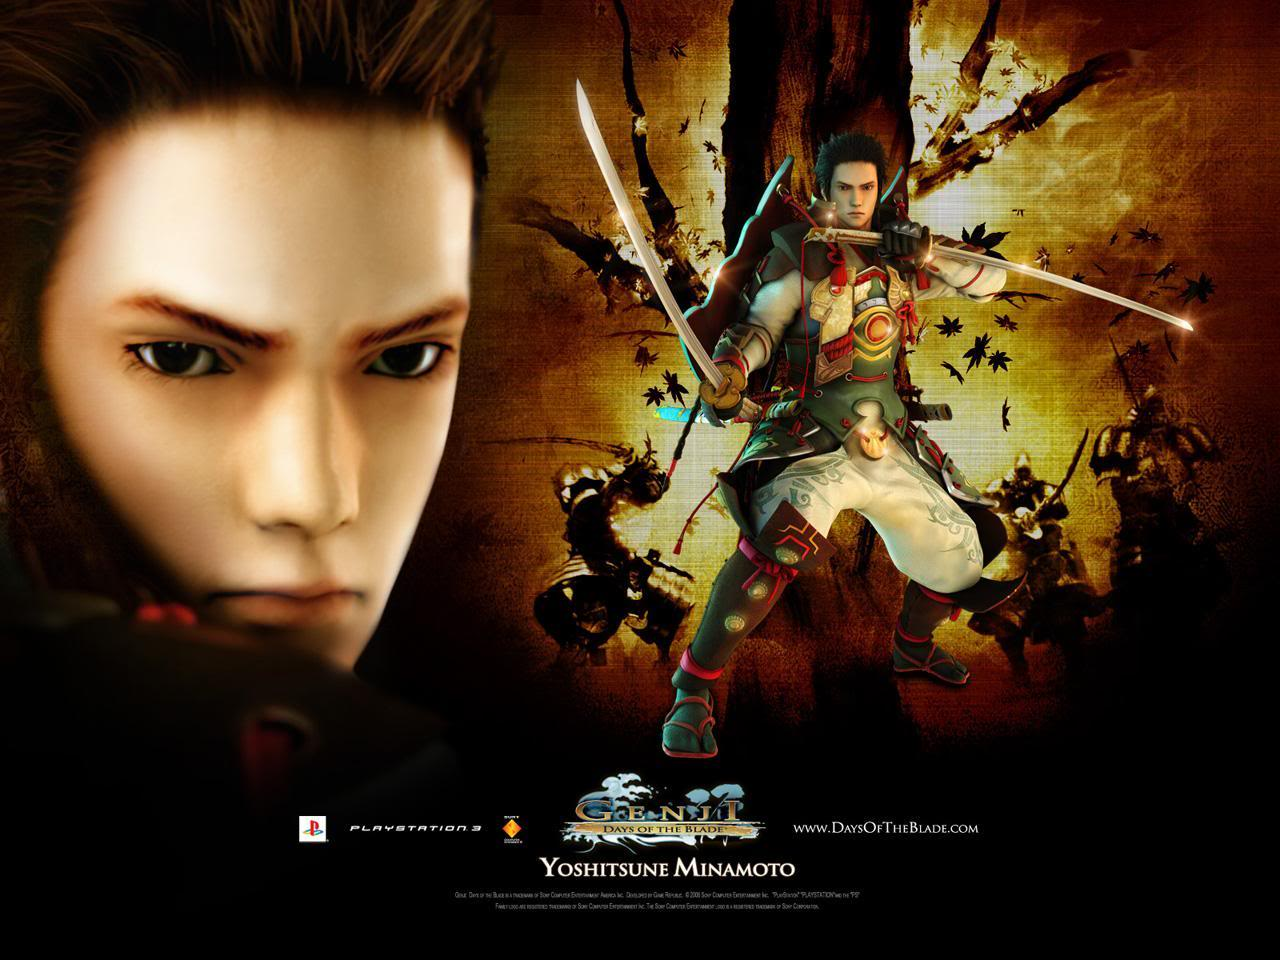 Personnages importants Genji-Days-of-the-Blade-2-NHLXGATIC0-1280x960